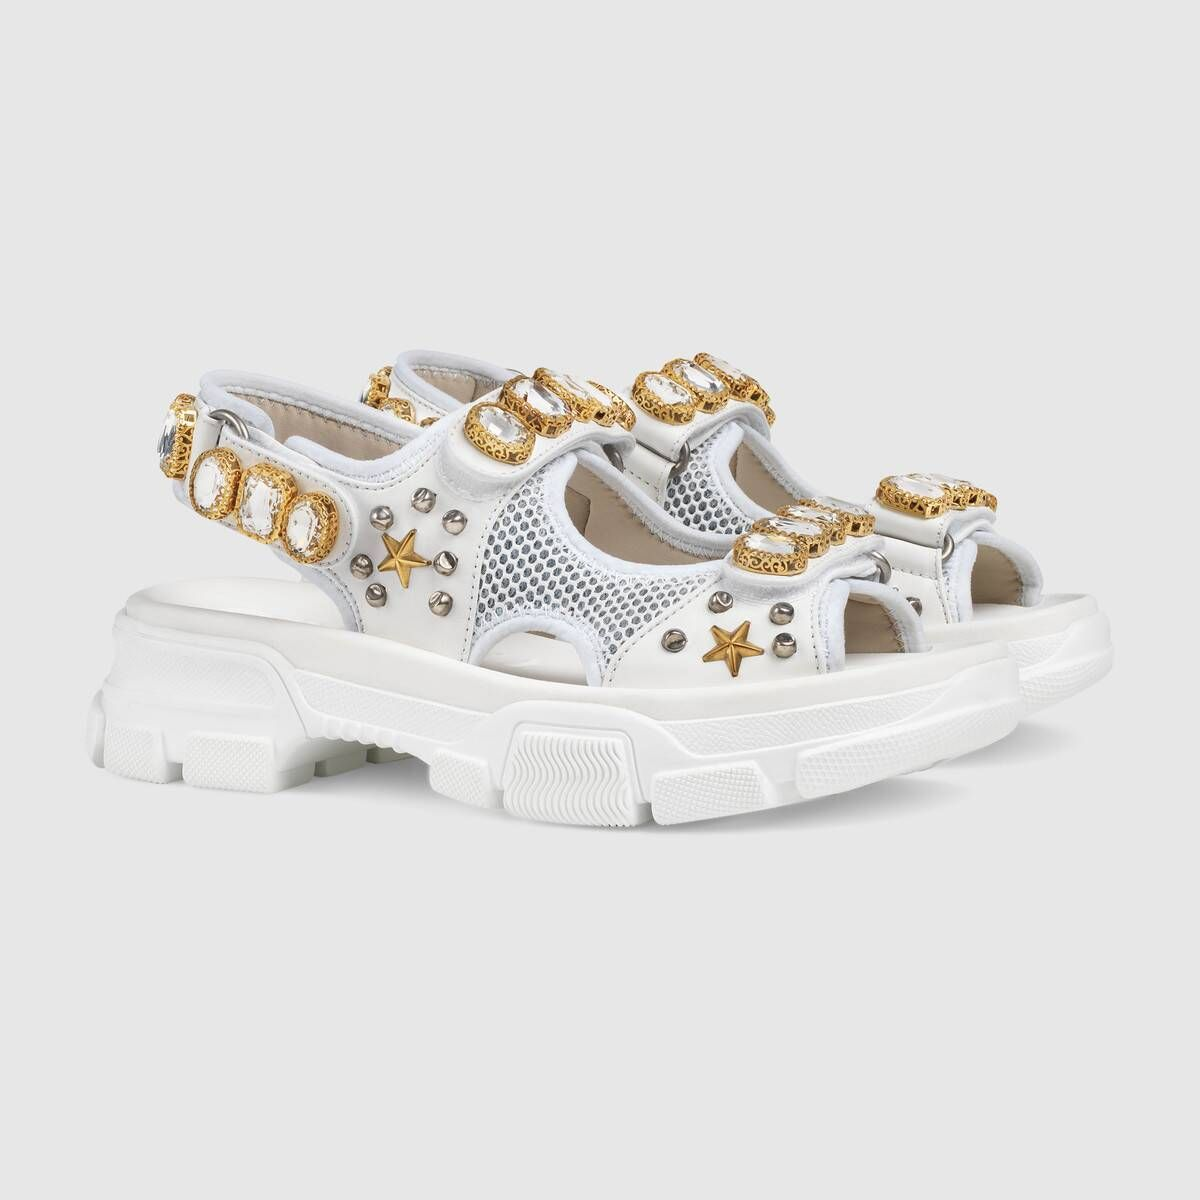 Shop The White Leather And Mesh Sandal With Crystals At Gucci Com Enjoy Free Shipping And Complimentary Gift Wrapping Womens Sandals Shoes Gucci Leather